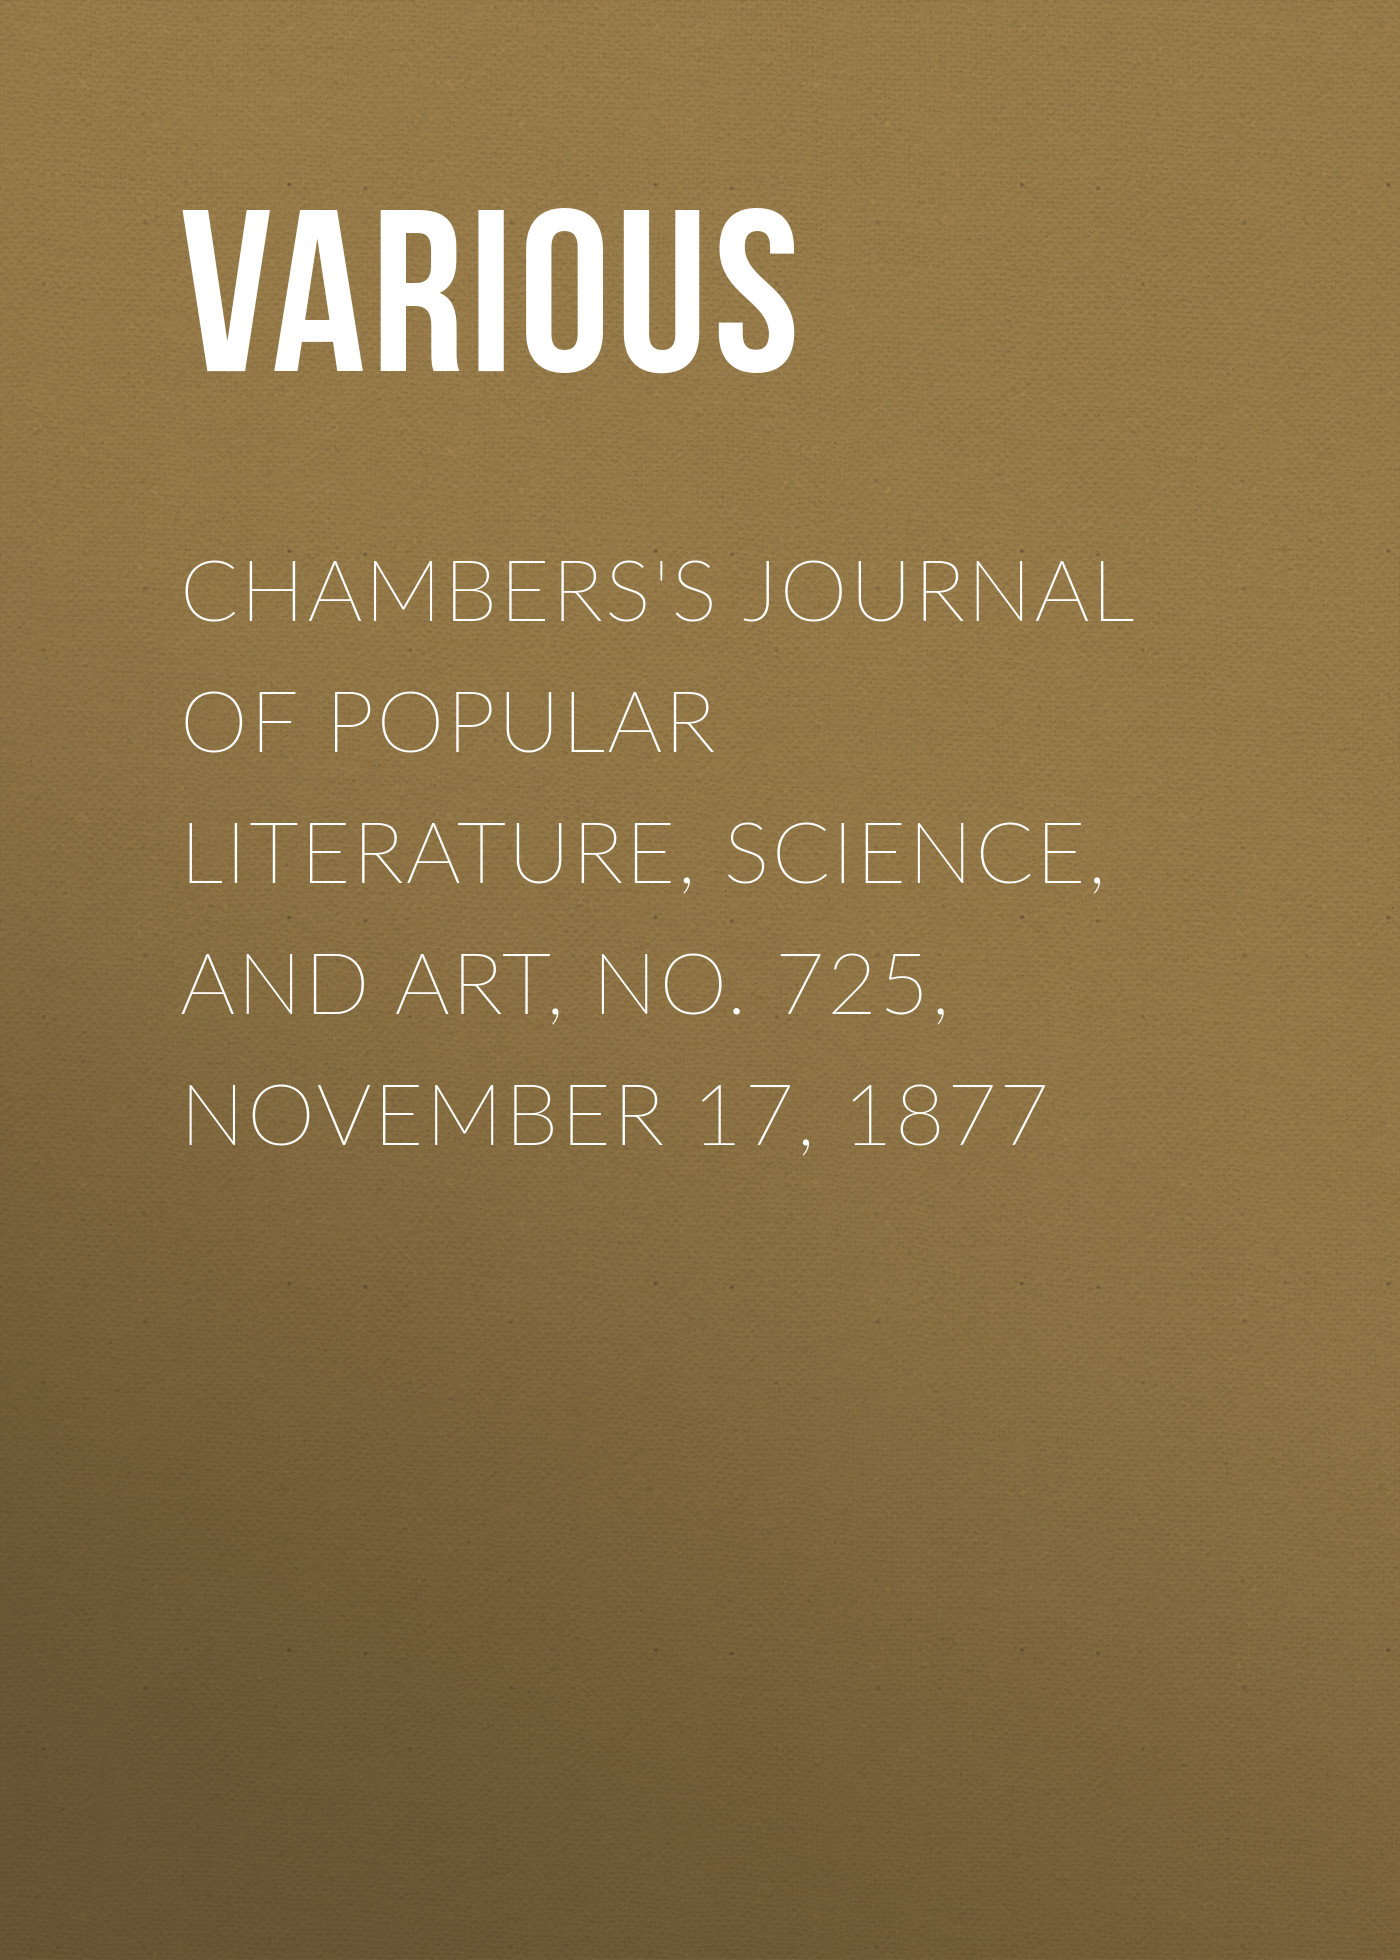 Various Chambers's Journal of Popular Literature, Science, and Art, No. 725, November 17, 1877